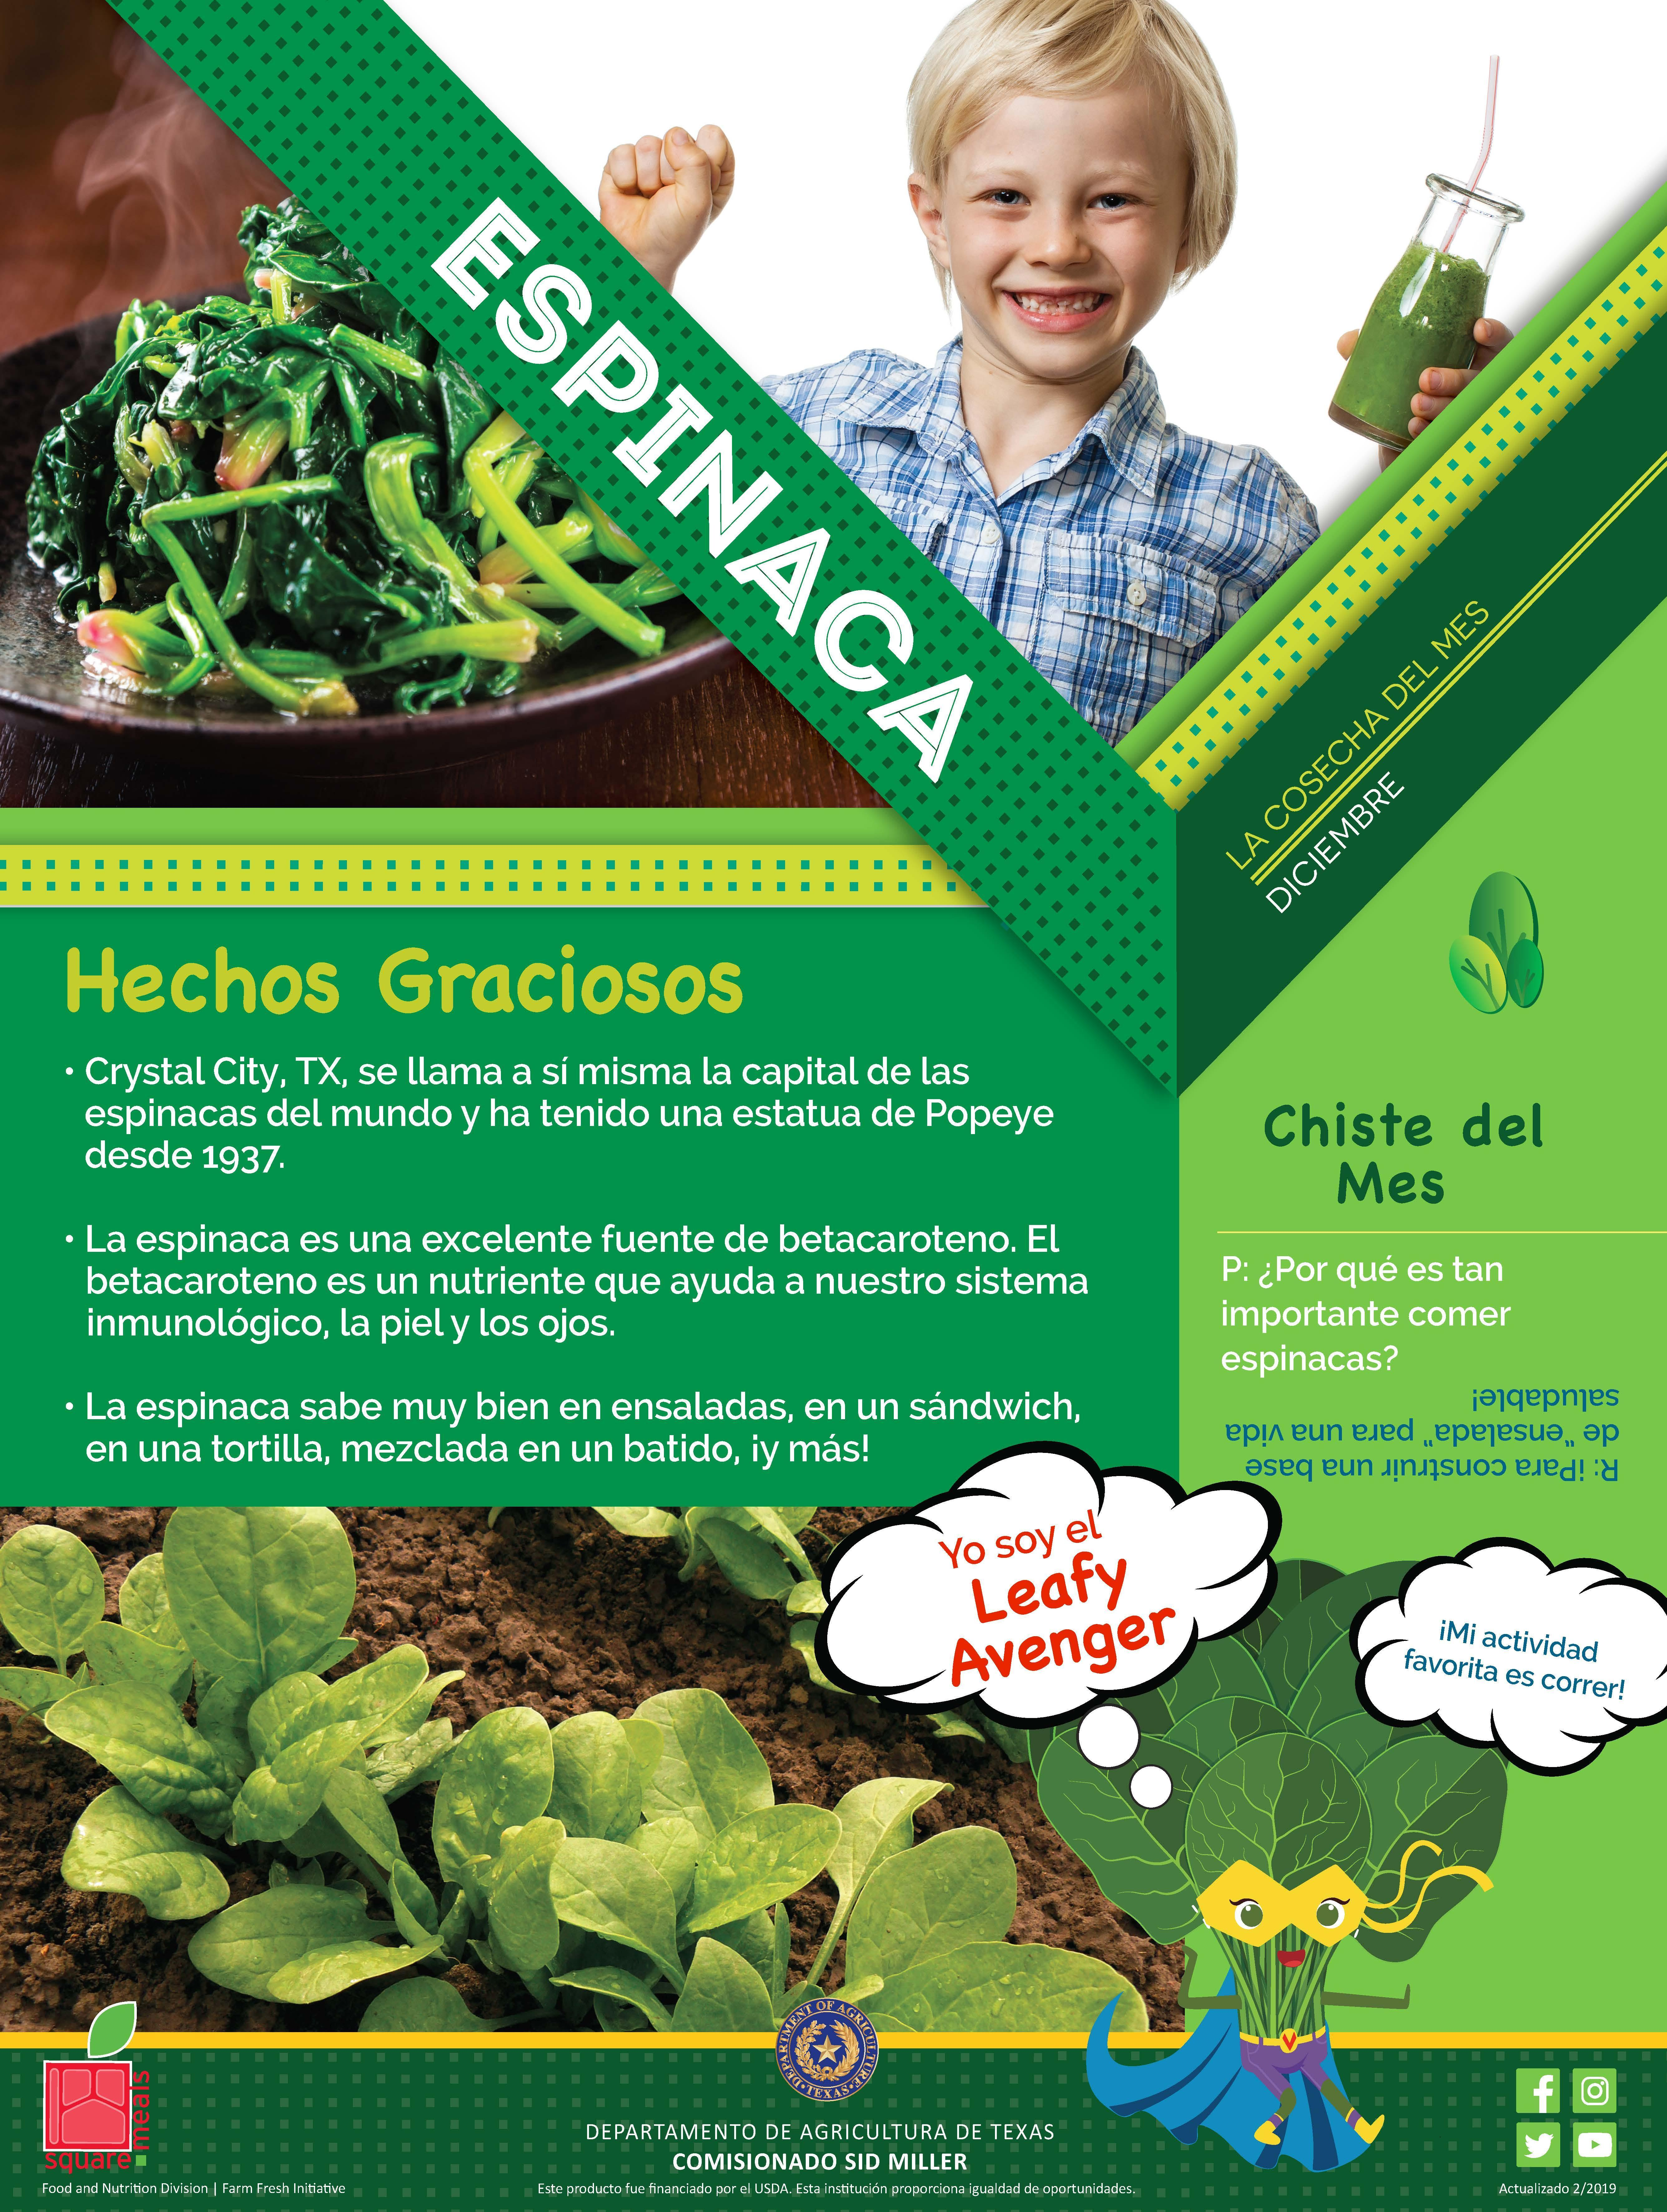 Spinach is the Harvest of the Month